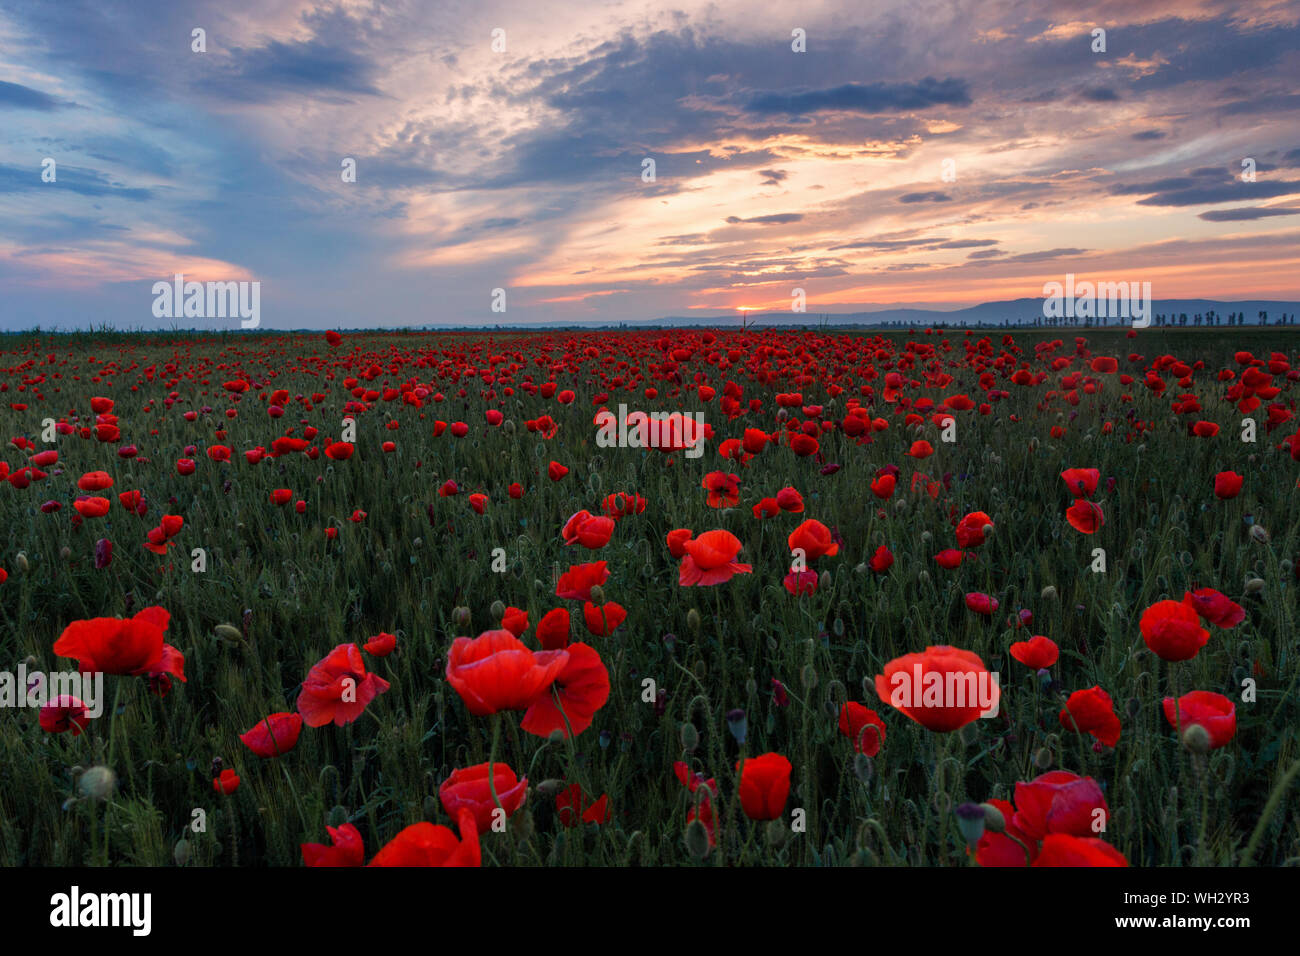 Poppies Growing In Field Against Sky During Sunset Stock Photo